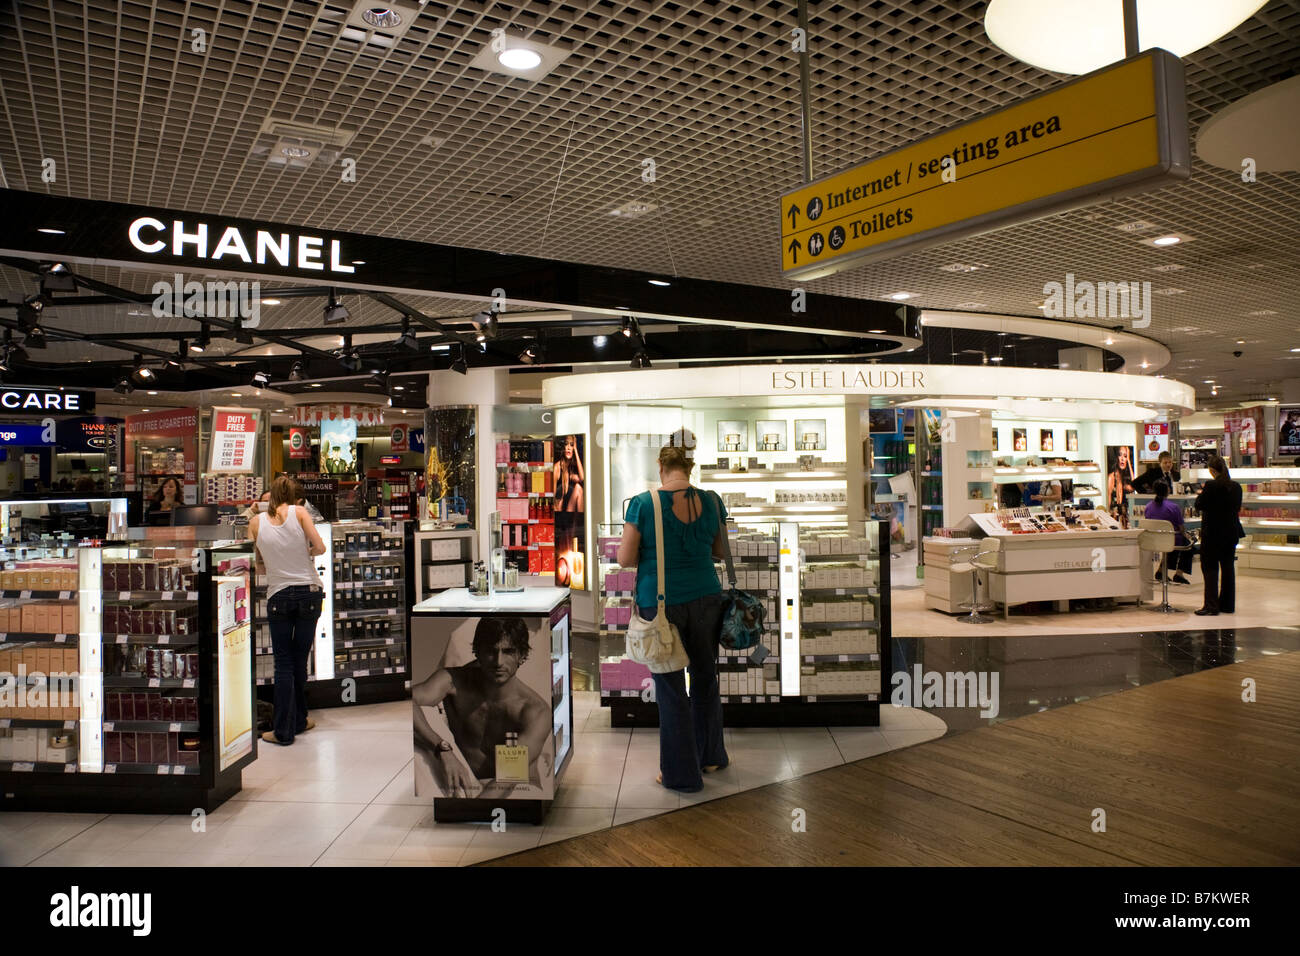 chanel outlet. luxury goods / chanel perfume perfumery cosmetics shop outlet in departure lounge at t